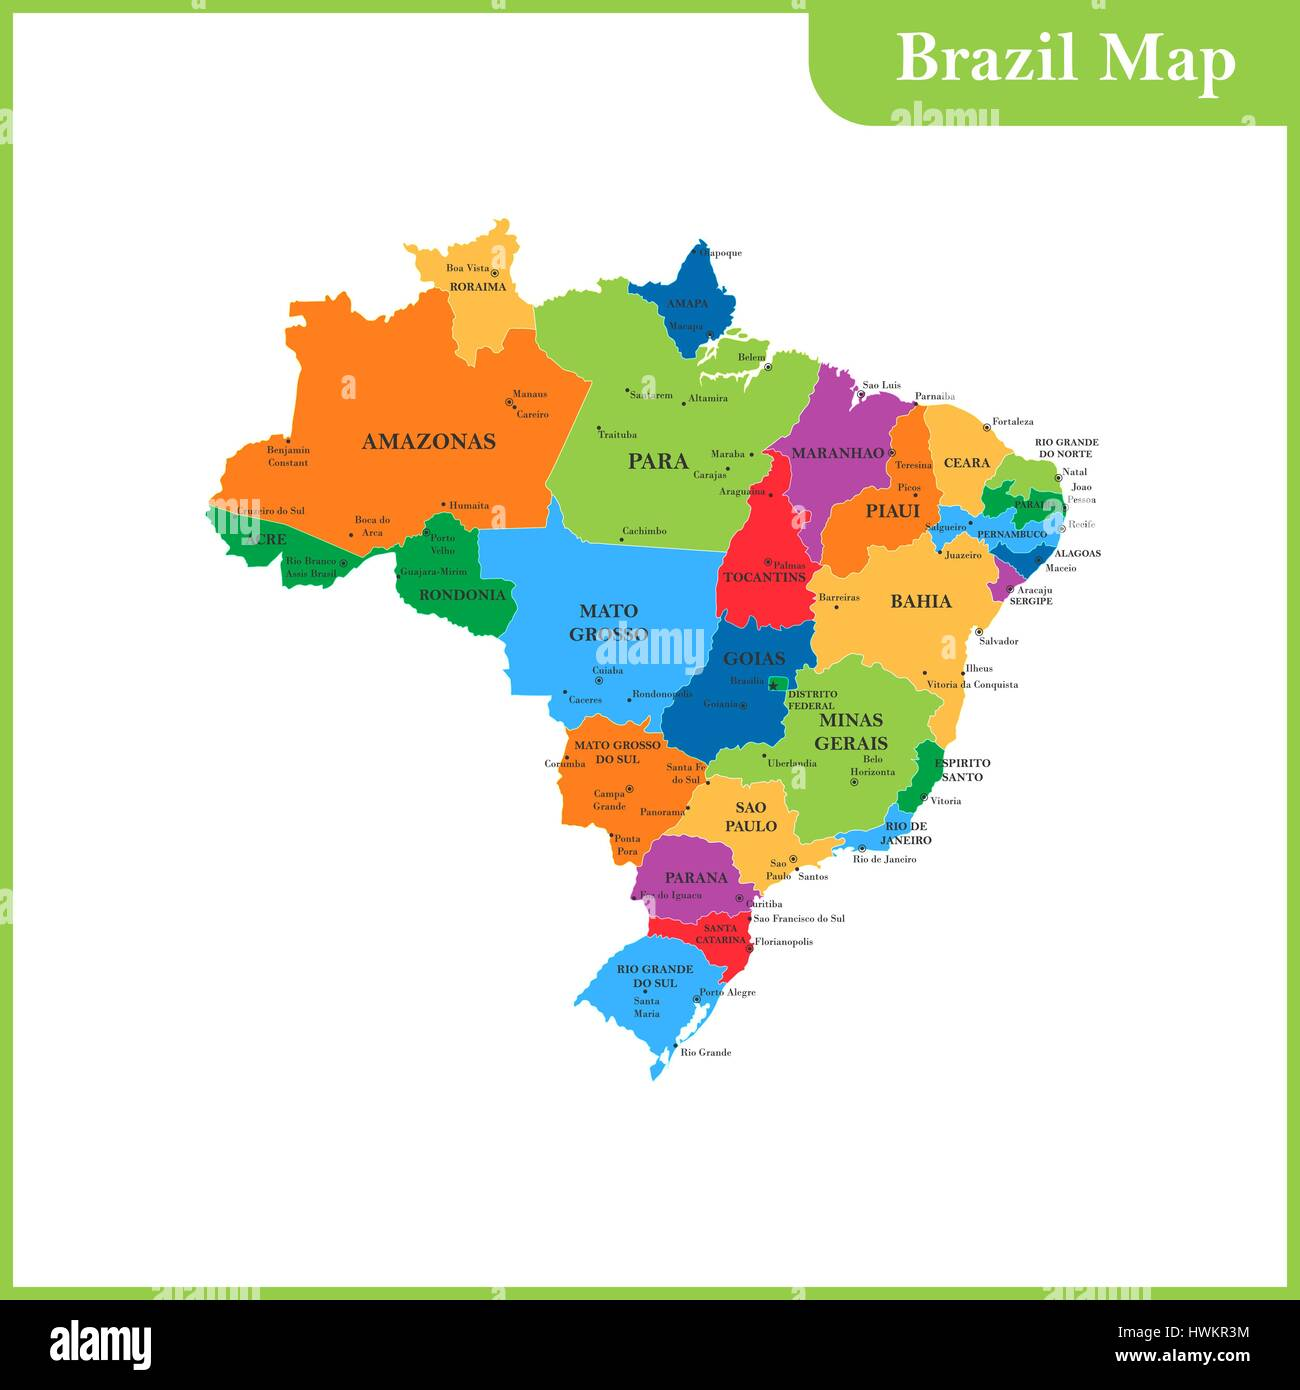 The Detailed Map Of The Brazil With Regions Or States And Cities - Map of brazil with cities